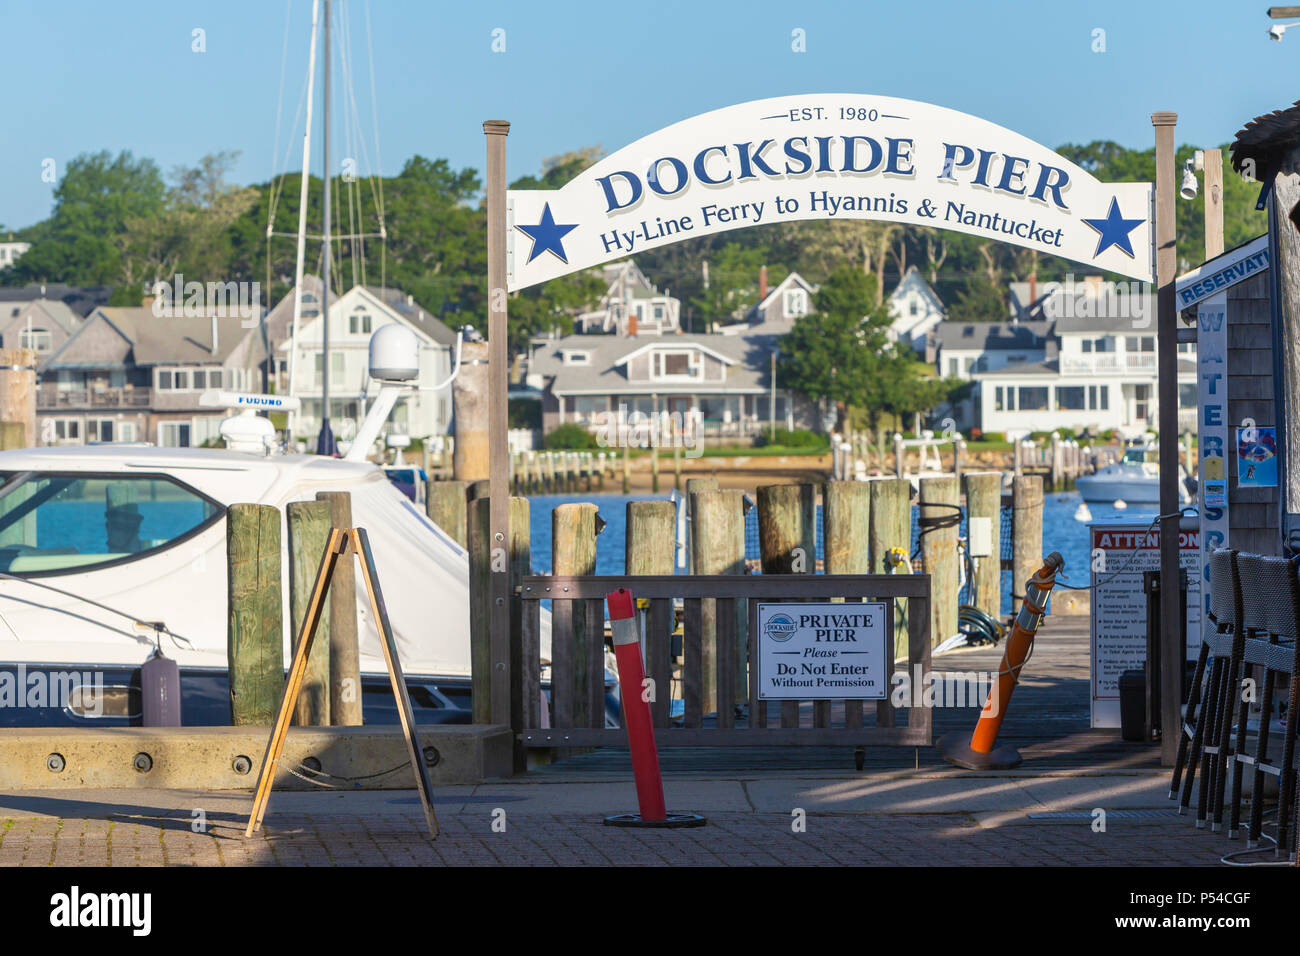 The dock for Hy-Line Cruises' ferries to Hyannis and Nantucket on the Dockside Pier in Oak Bluffs, Massachusetts on Martha's Vineyard. - Stock Image